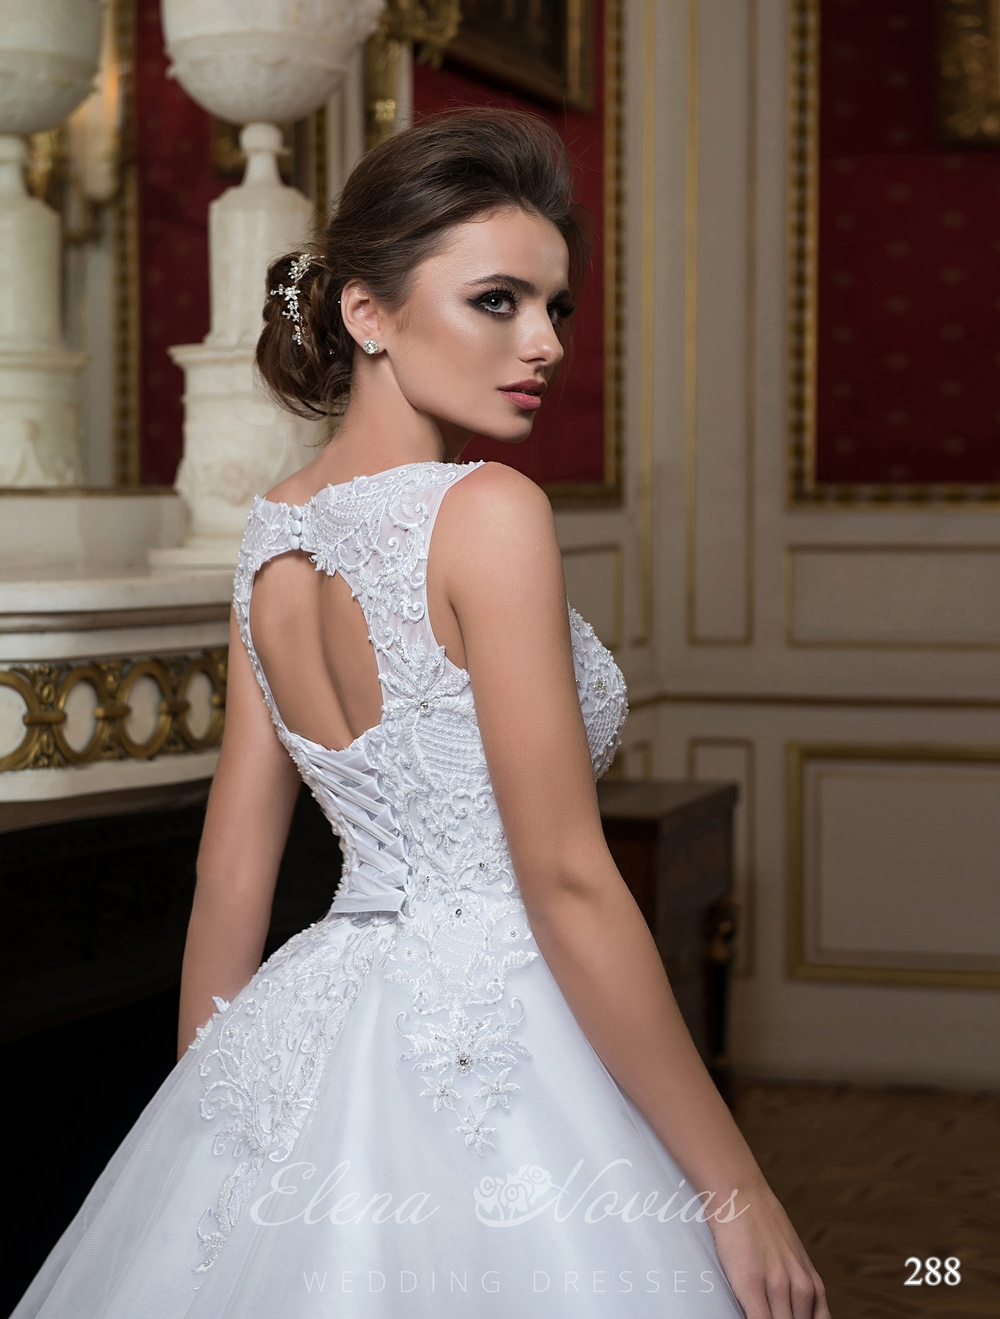 Wedding dress wholesale 288